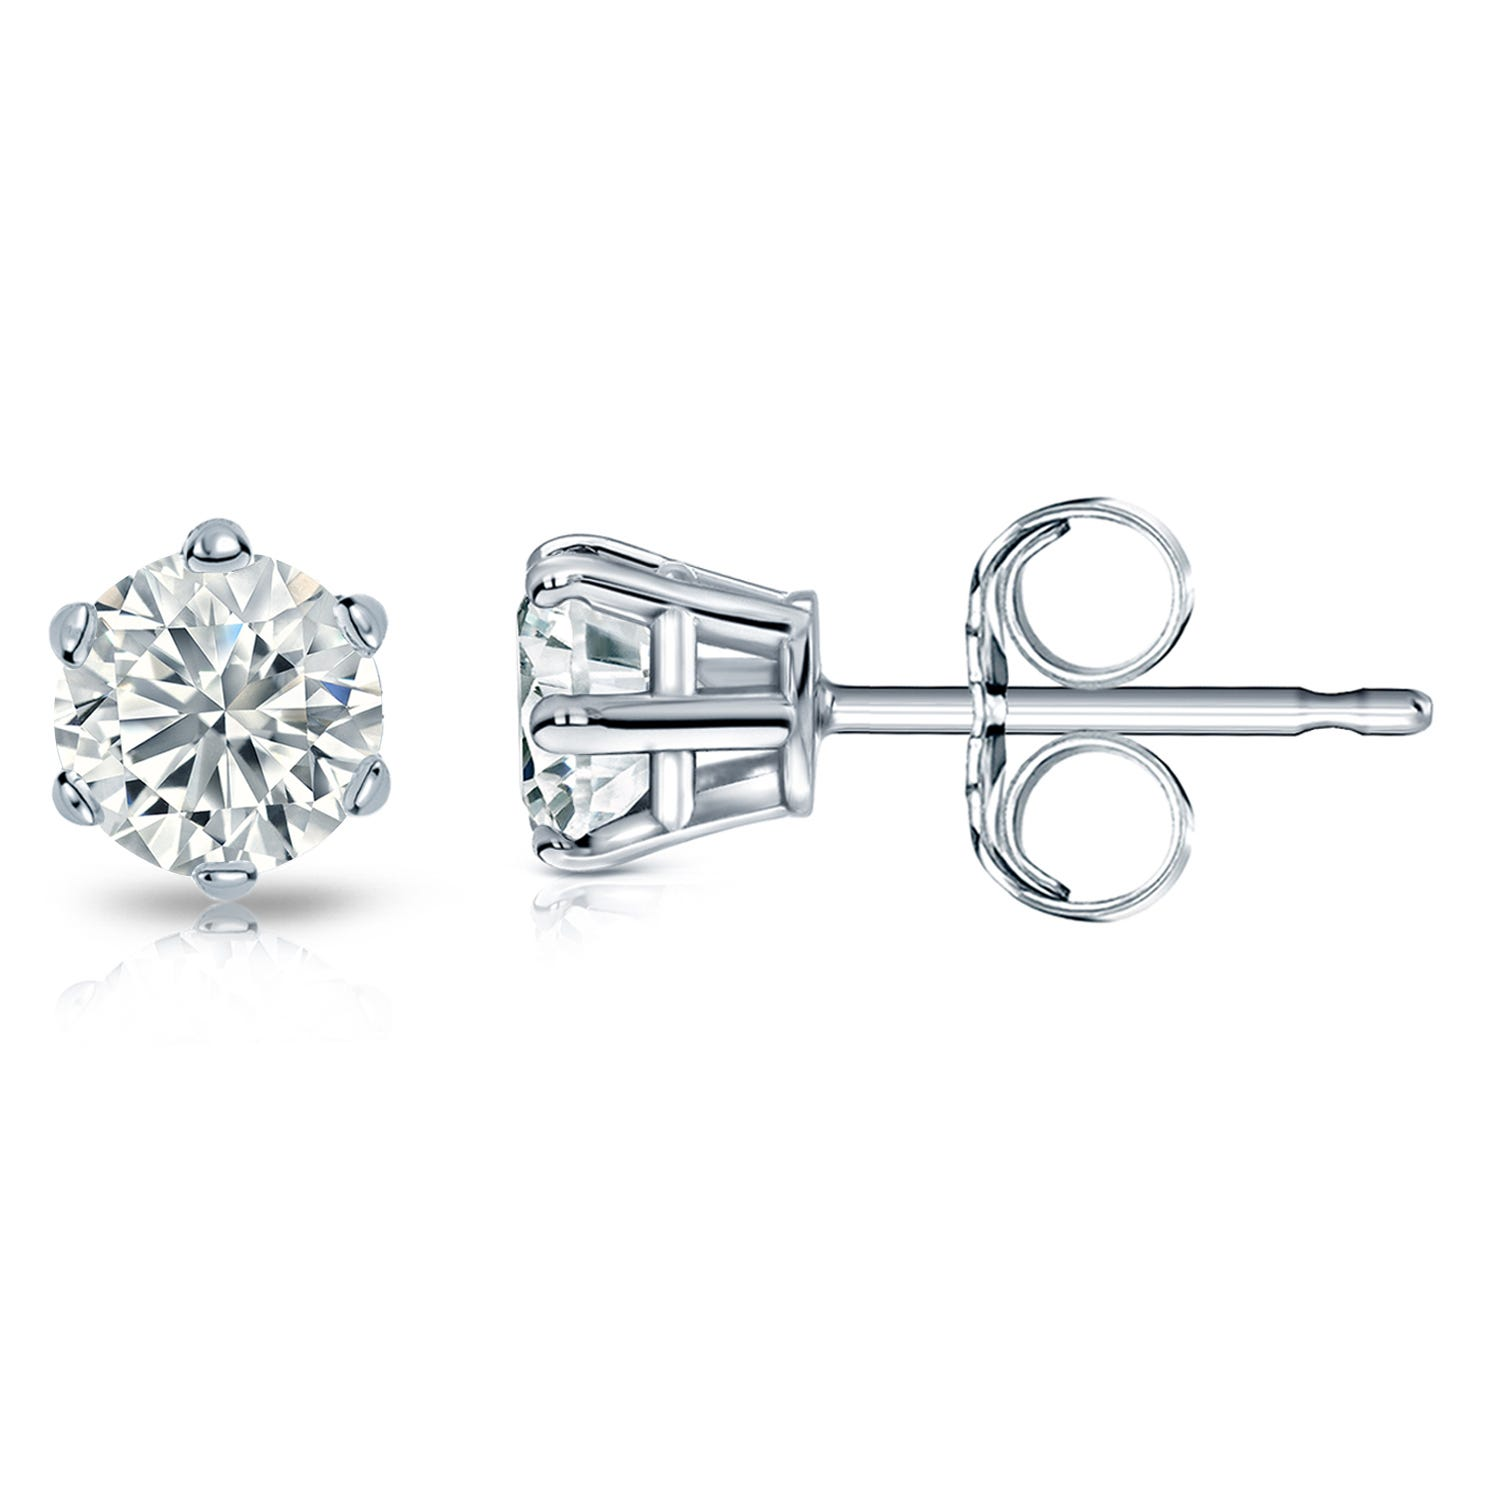 Round Diamond 1ctw. (IJ-I2) Solitaire Stud 6-Prong Earrings in 14K White Gold